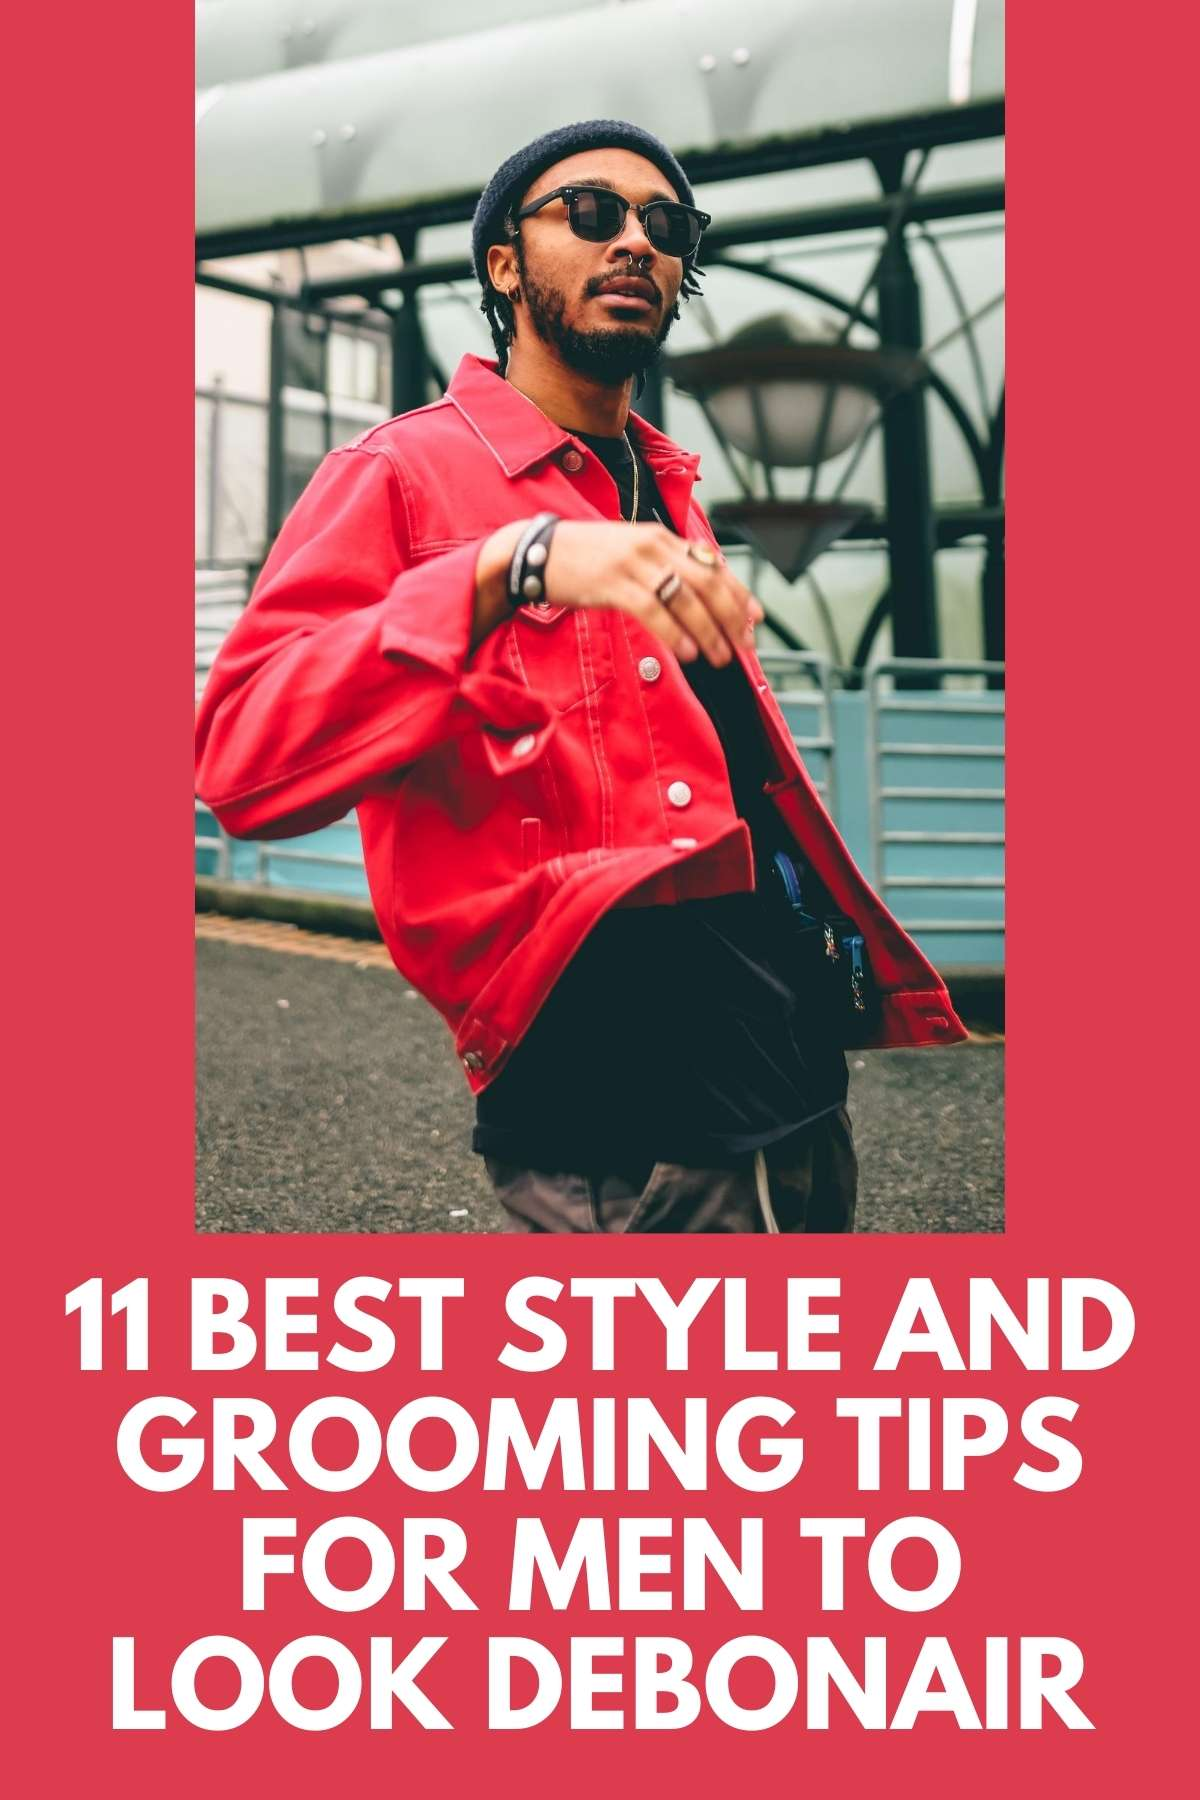 11 BEST STYLE AND GROOMING TIPS FOR MEN TO LOOK DEBONAIR